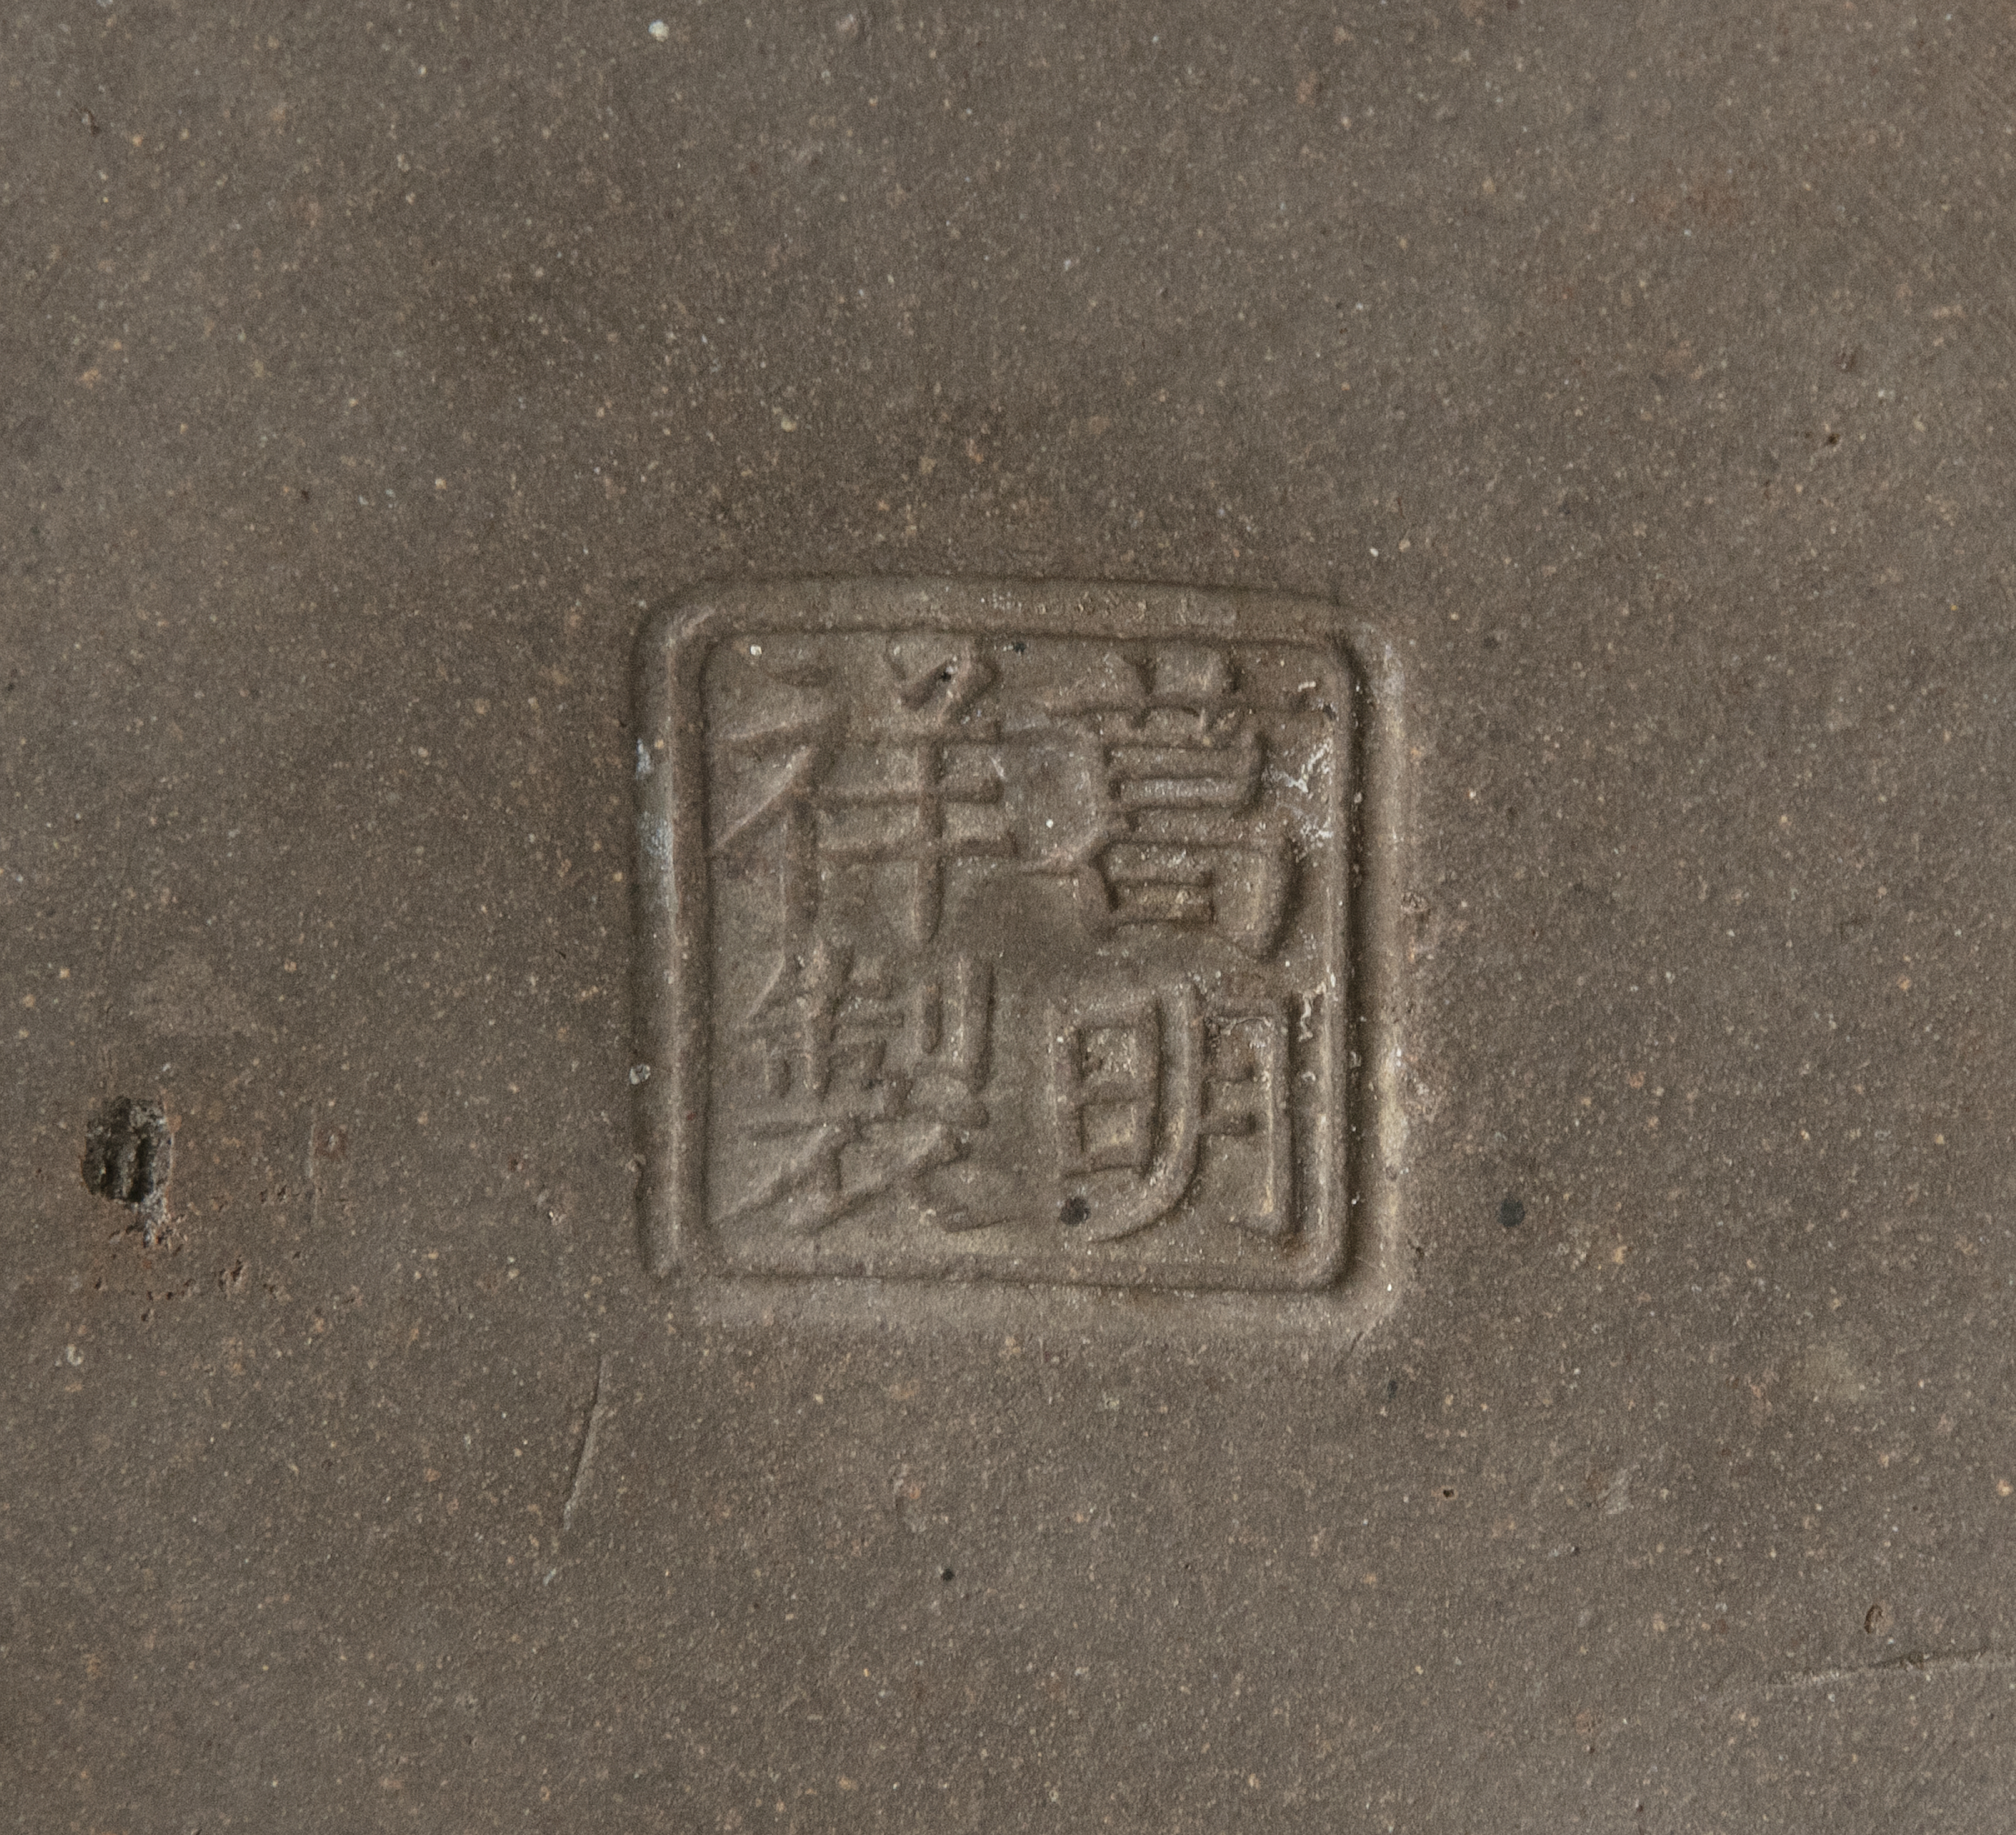 A ROBIN'S EGG GLAZED YIXING VASE BEARING THE SEAL OF GE MINGXIANG 葛明祥 China, 18th century or later - Image 10 of 15